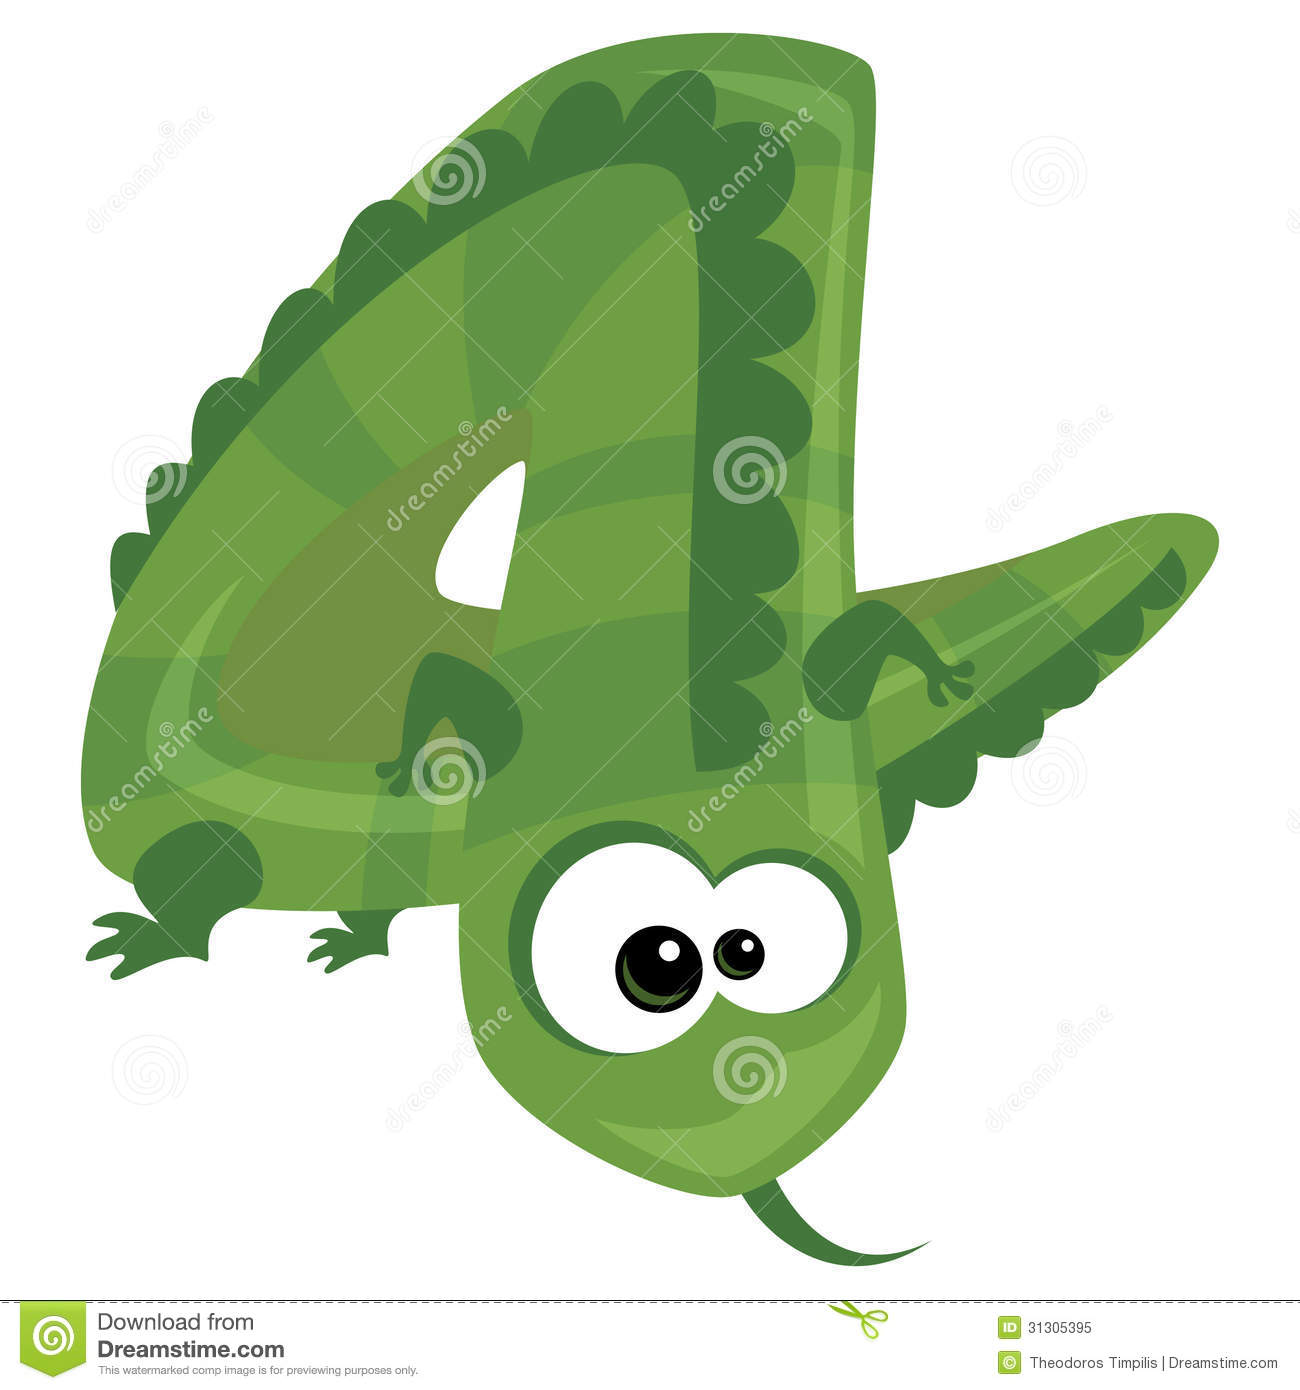 Number 4 Cartoon Funny Lizard Royalty Free Stock Photo - Image ...